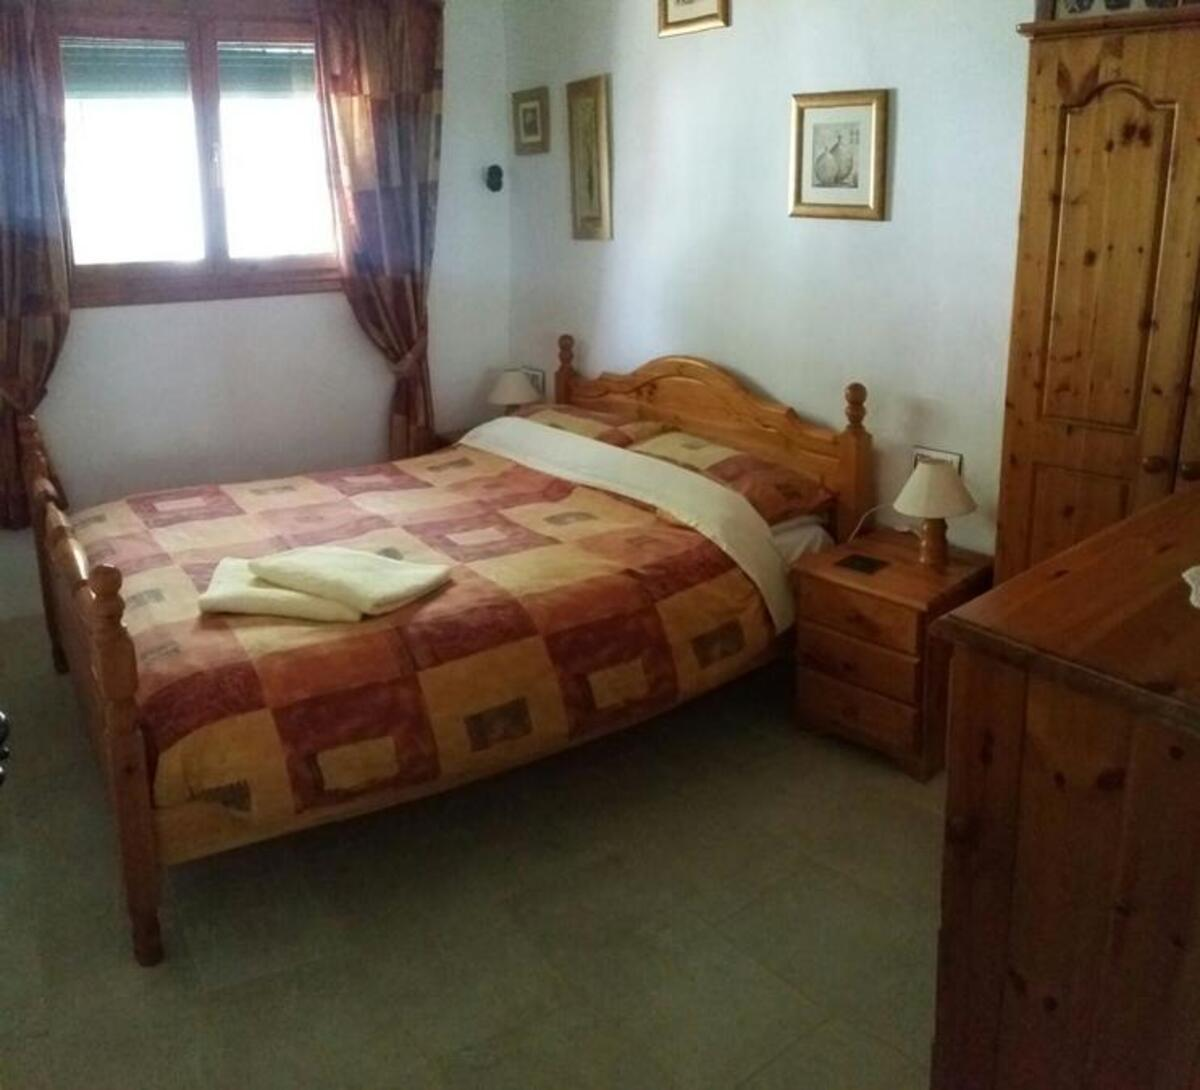 MSCCORT1 Lake View Rural Accommodation: Hotels  Bed & Breakfast & Rural Tourism for sale in Rute